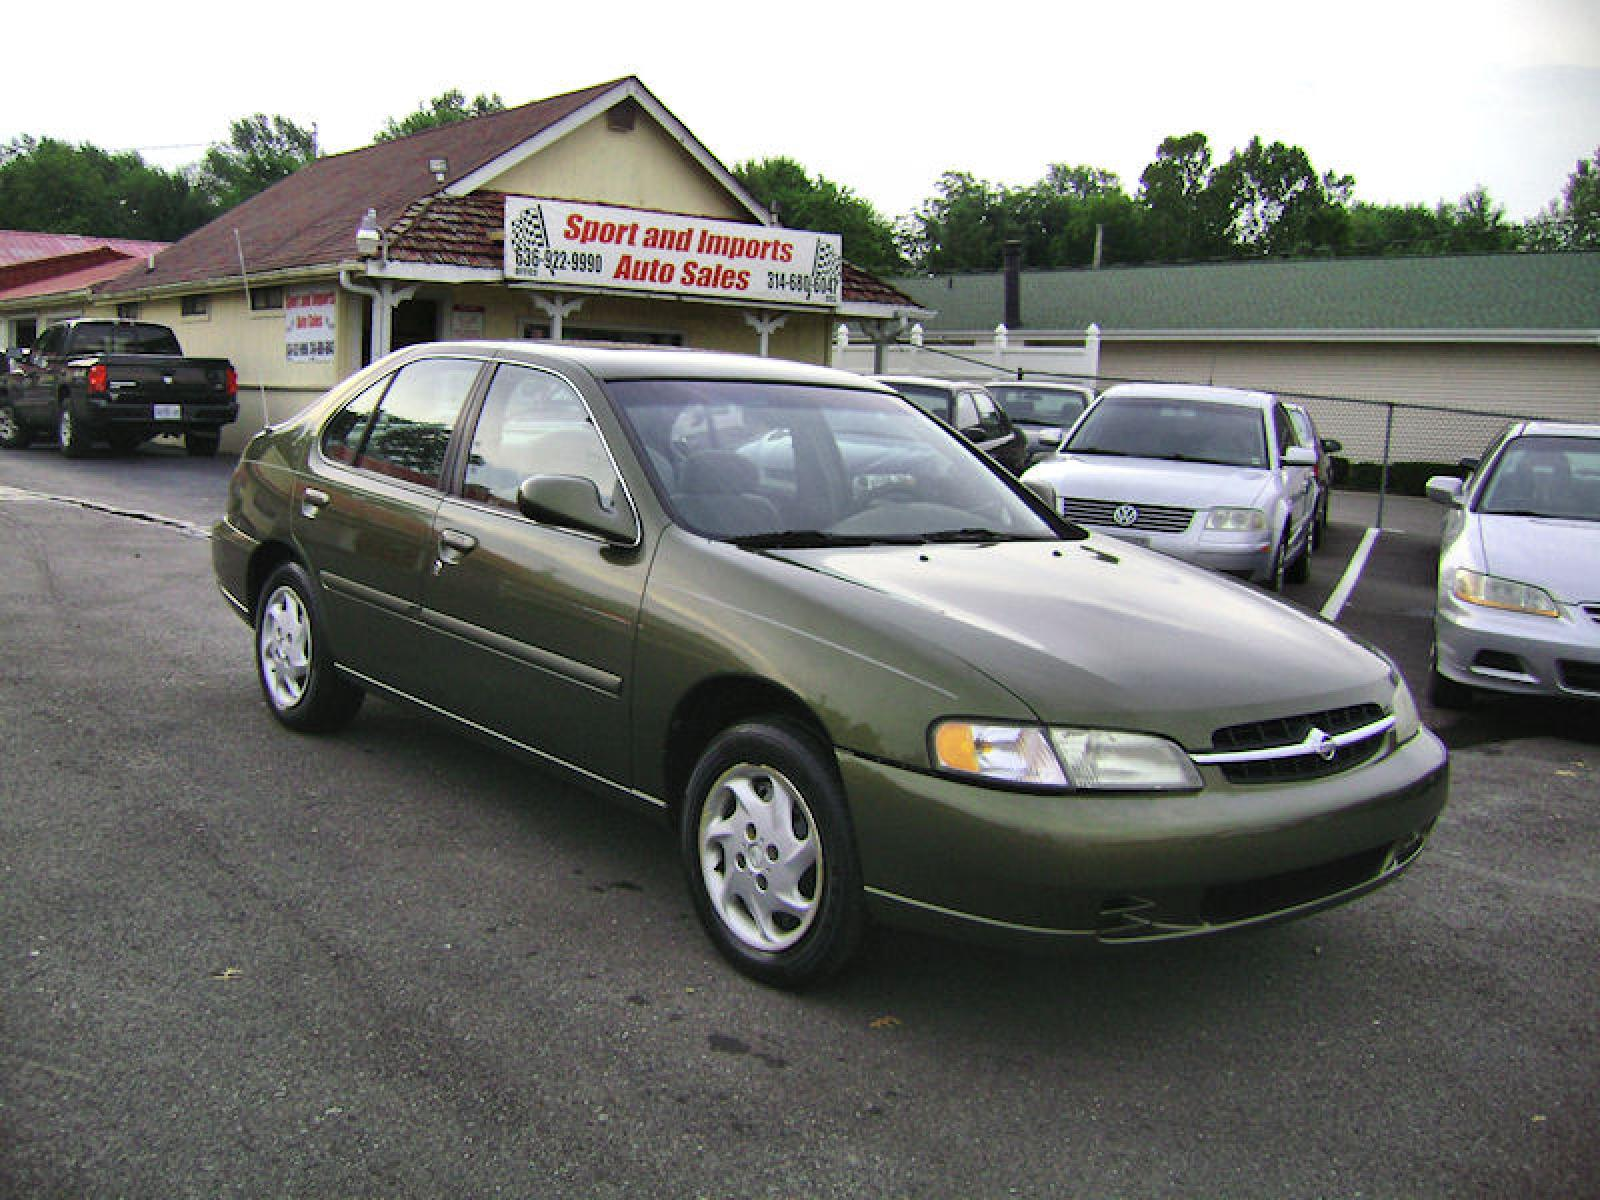 1998 Nissan Altima Green Gxe Information And Photos Zombiedrive 1600x1200